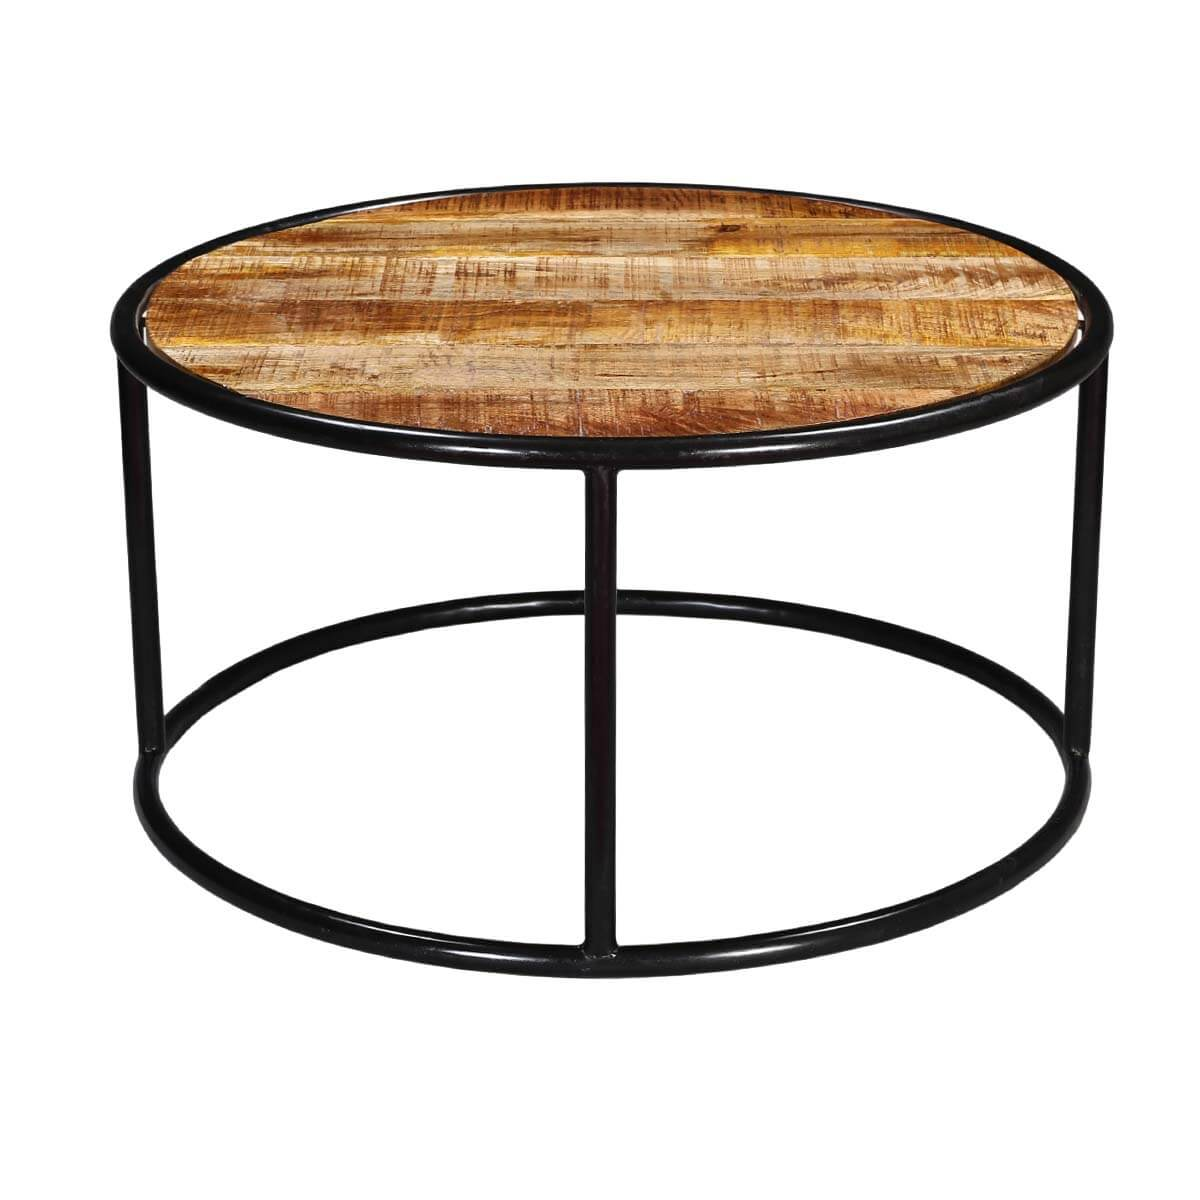 Laura Mango Wood Round Accent Coffee Table With Iron Legs